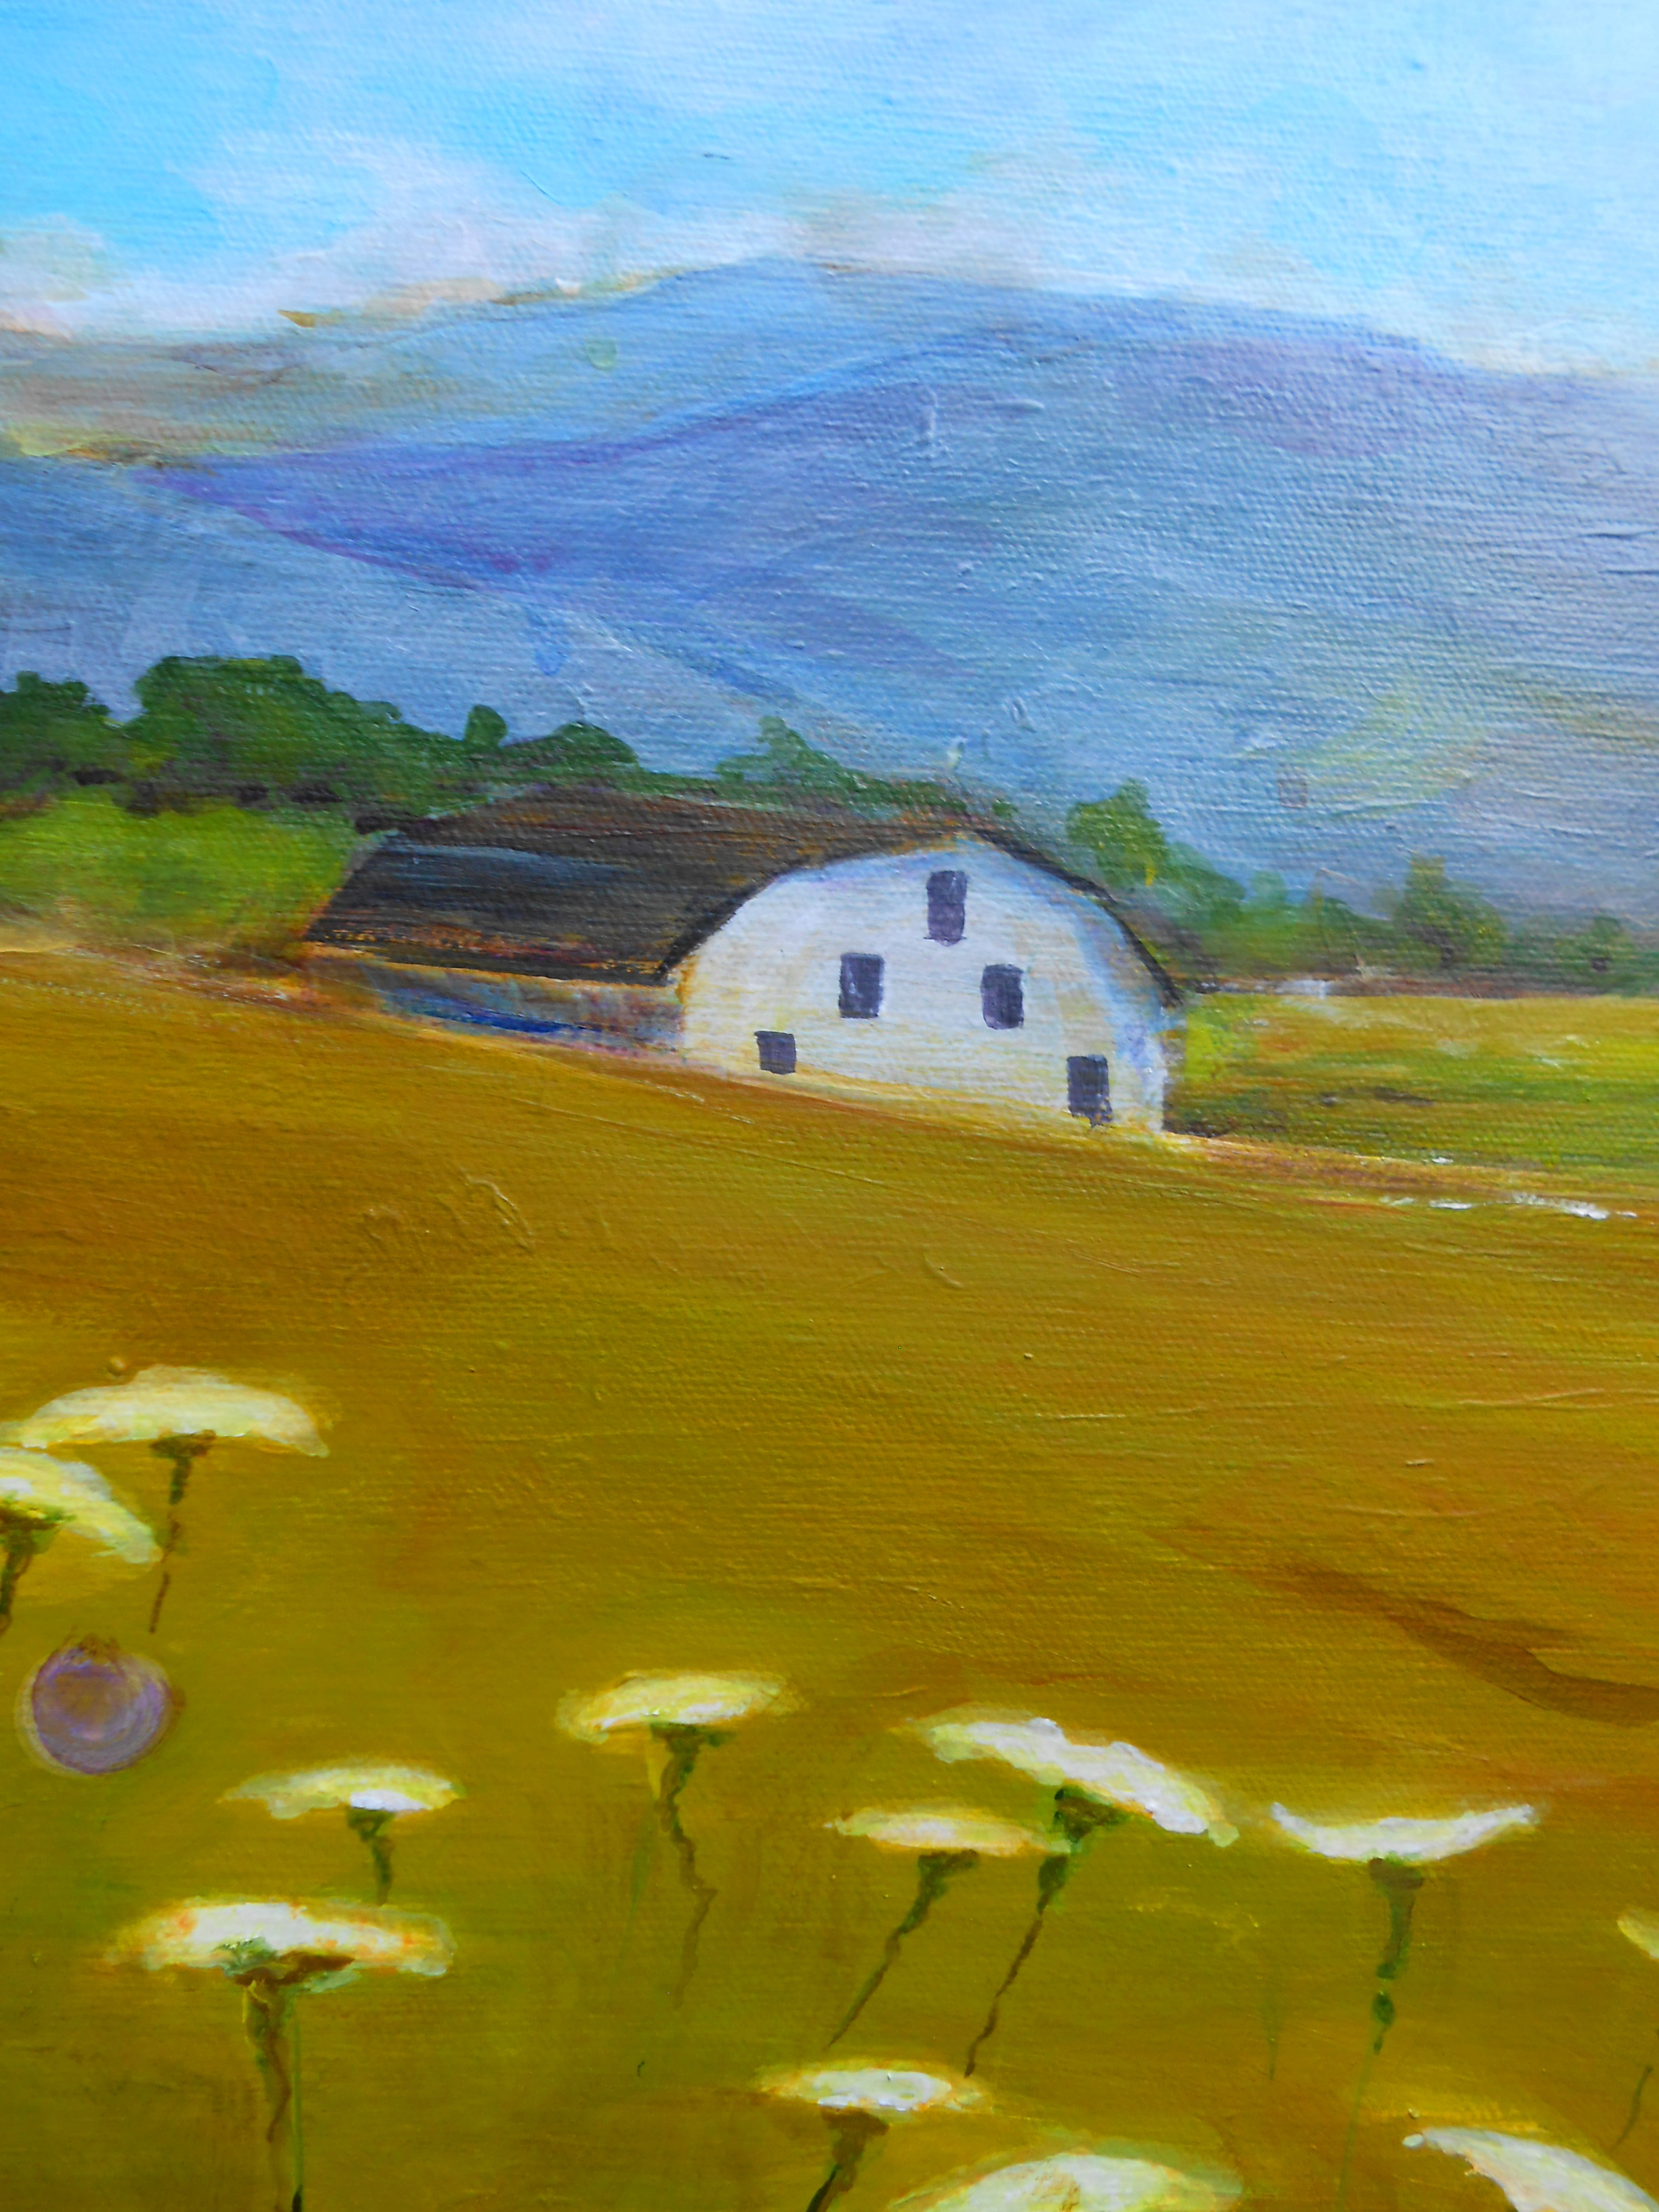 Shenandoah Valley 24 x 30 August 2014 (detail4) - Copy.JPG